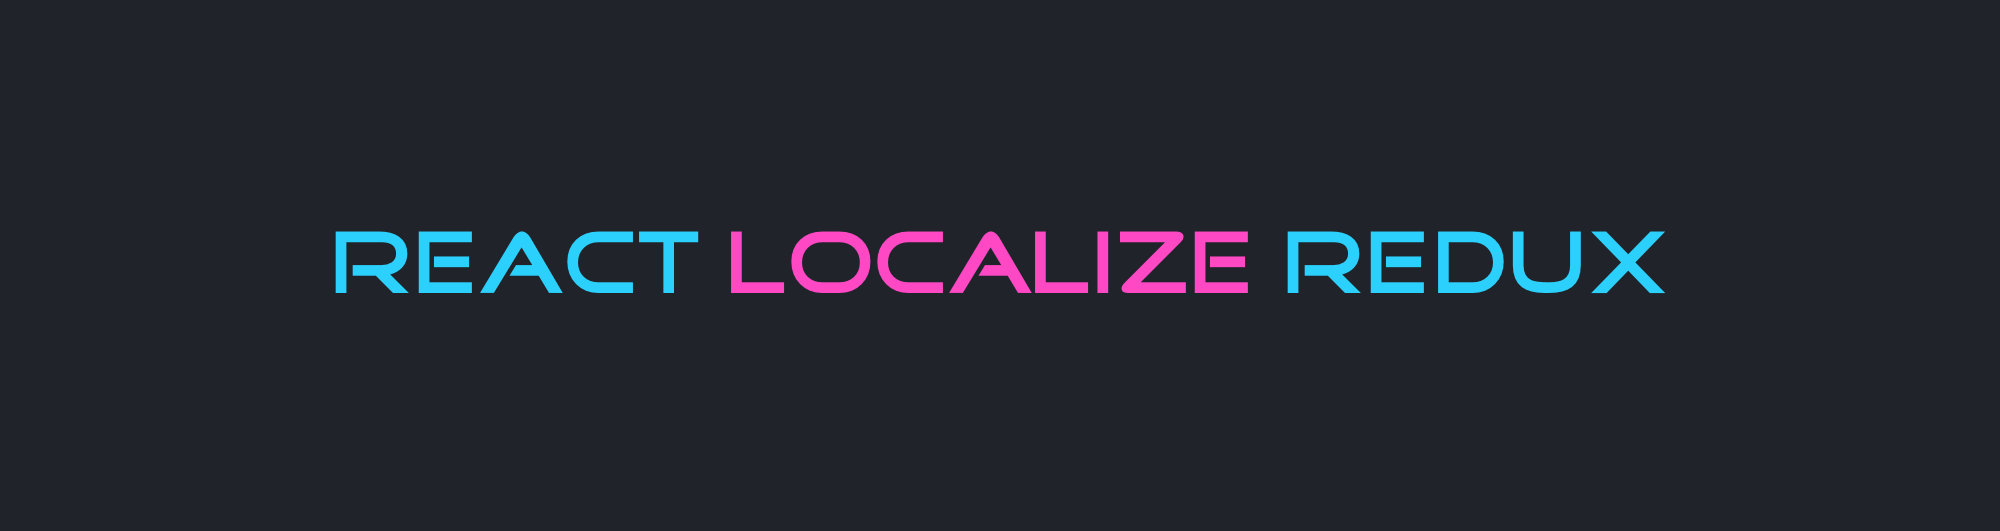 Dead simple localization for your React components - Ryan